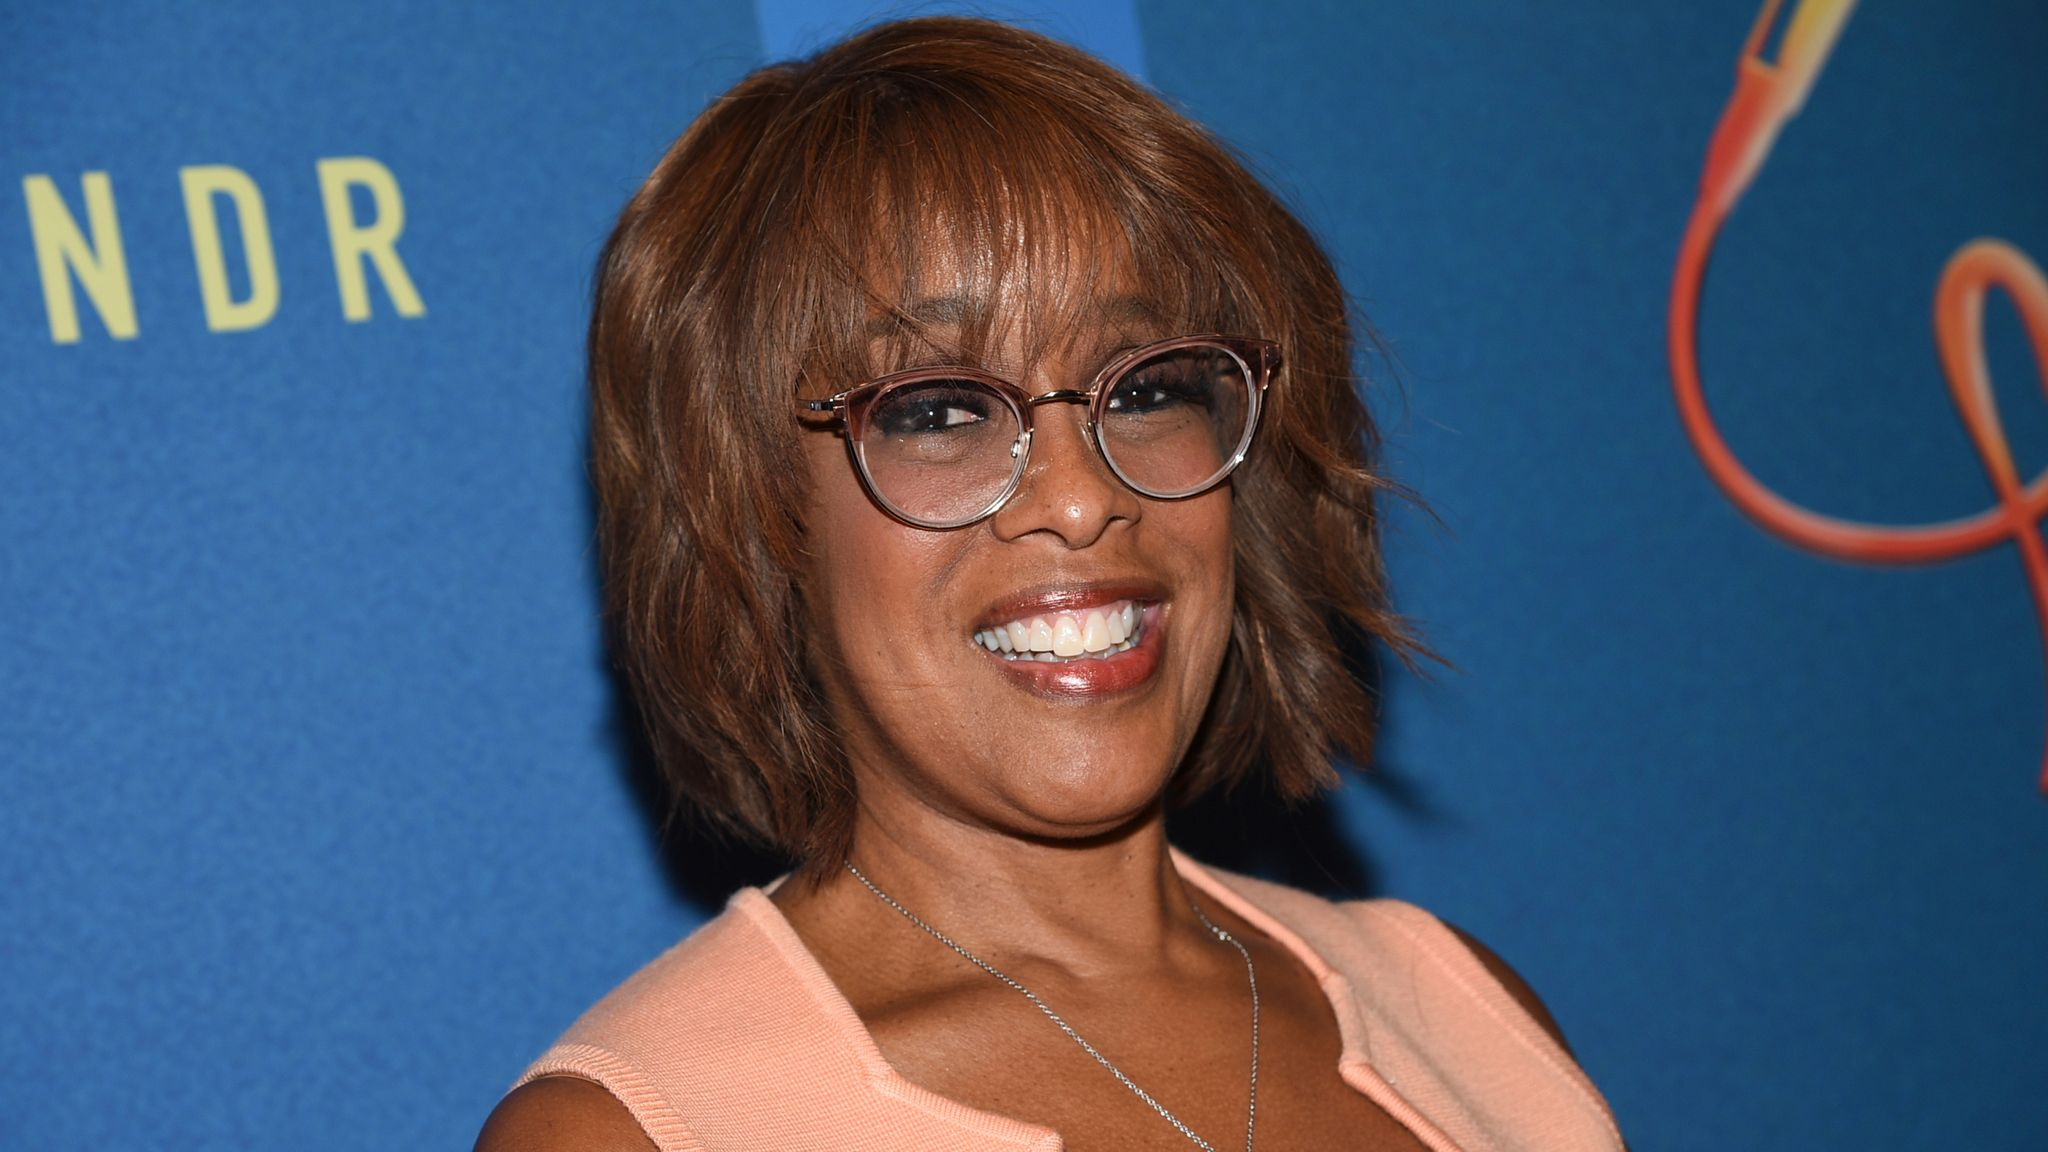 Gayle King helped organise the exclusive chat. Pic: Evan Agostini/Invision/AP